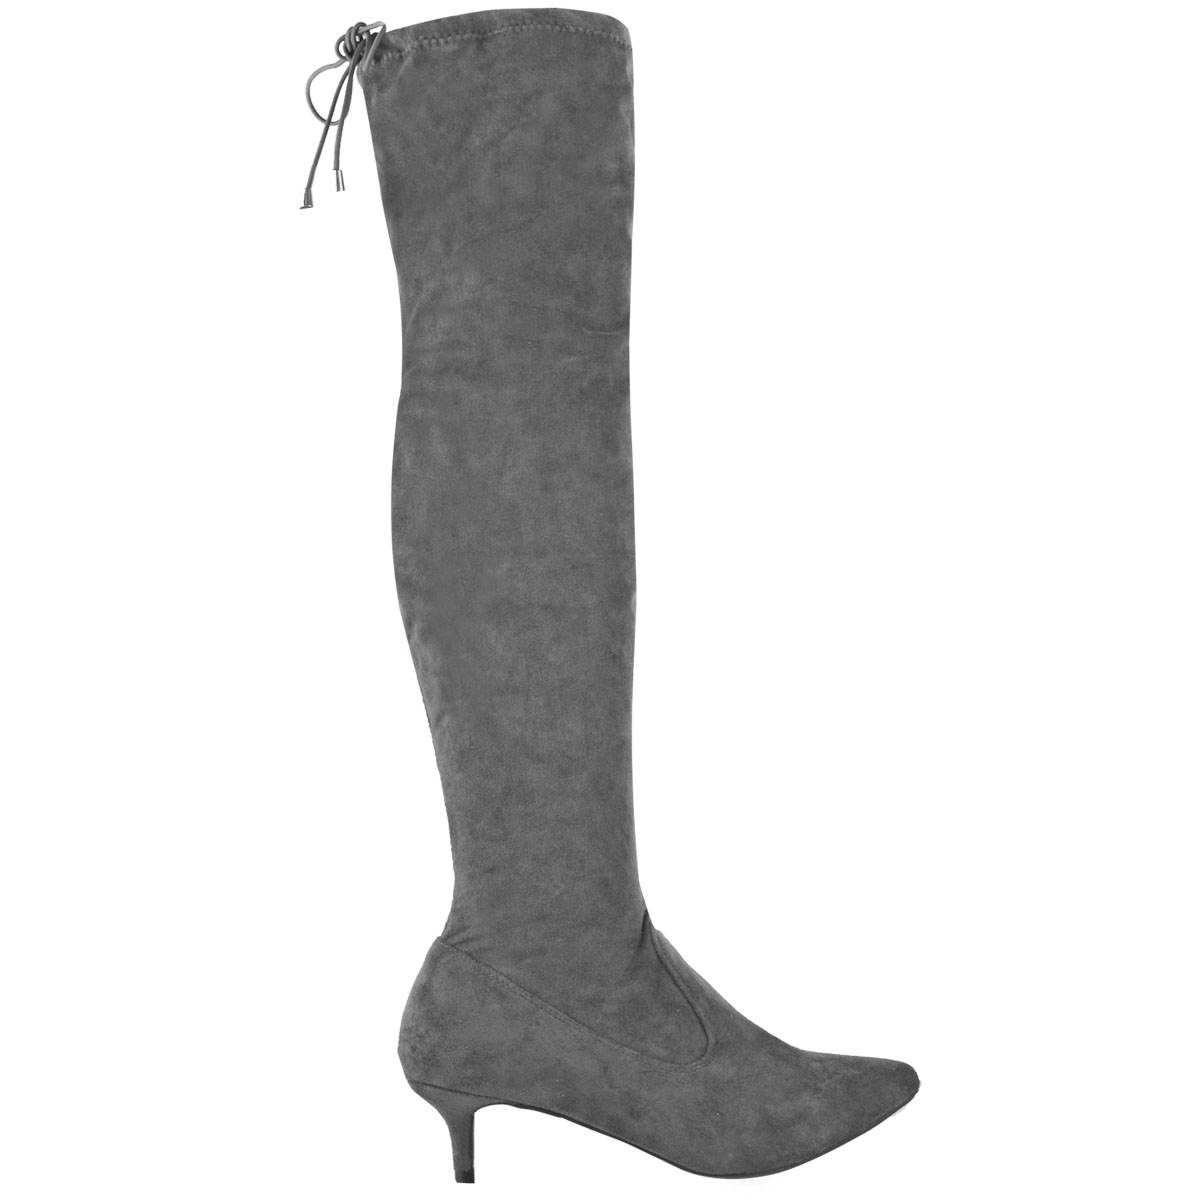 5f07137f398 Details about Womens Ladies Low Kitten Heel Thigh Knee High Boots Pointed  Stretchy Shoes Size